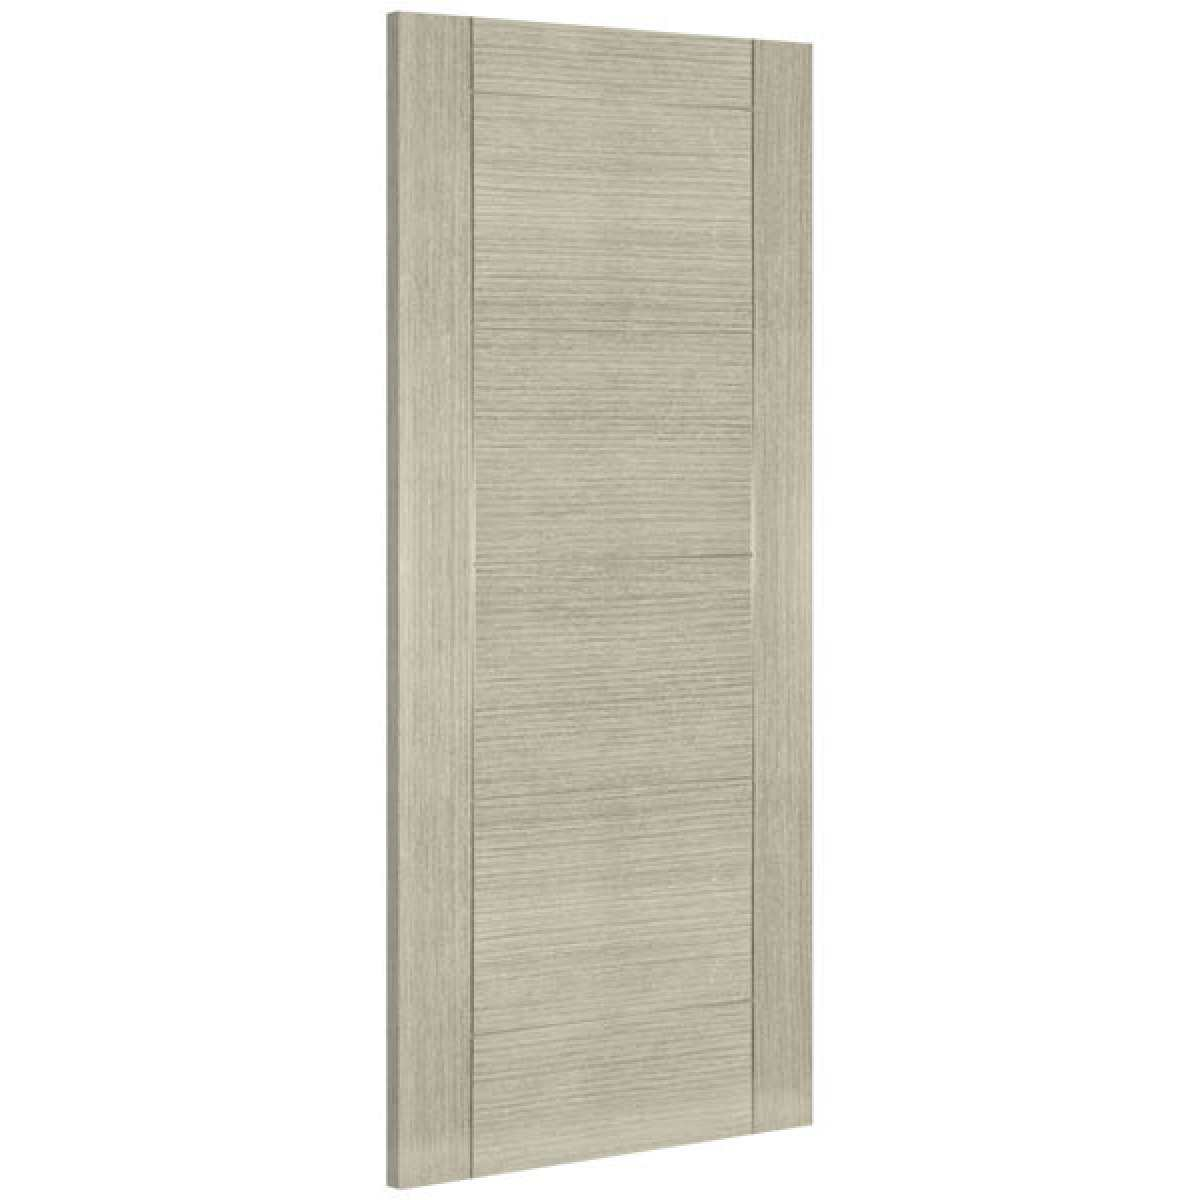 montreal light grey ash angled websters Image by Websters Timber